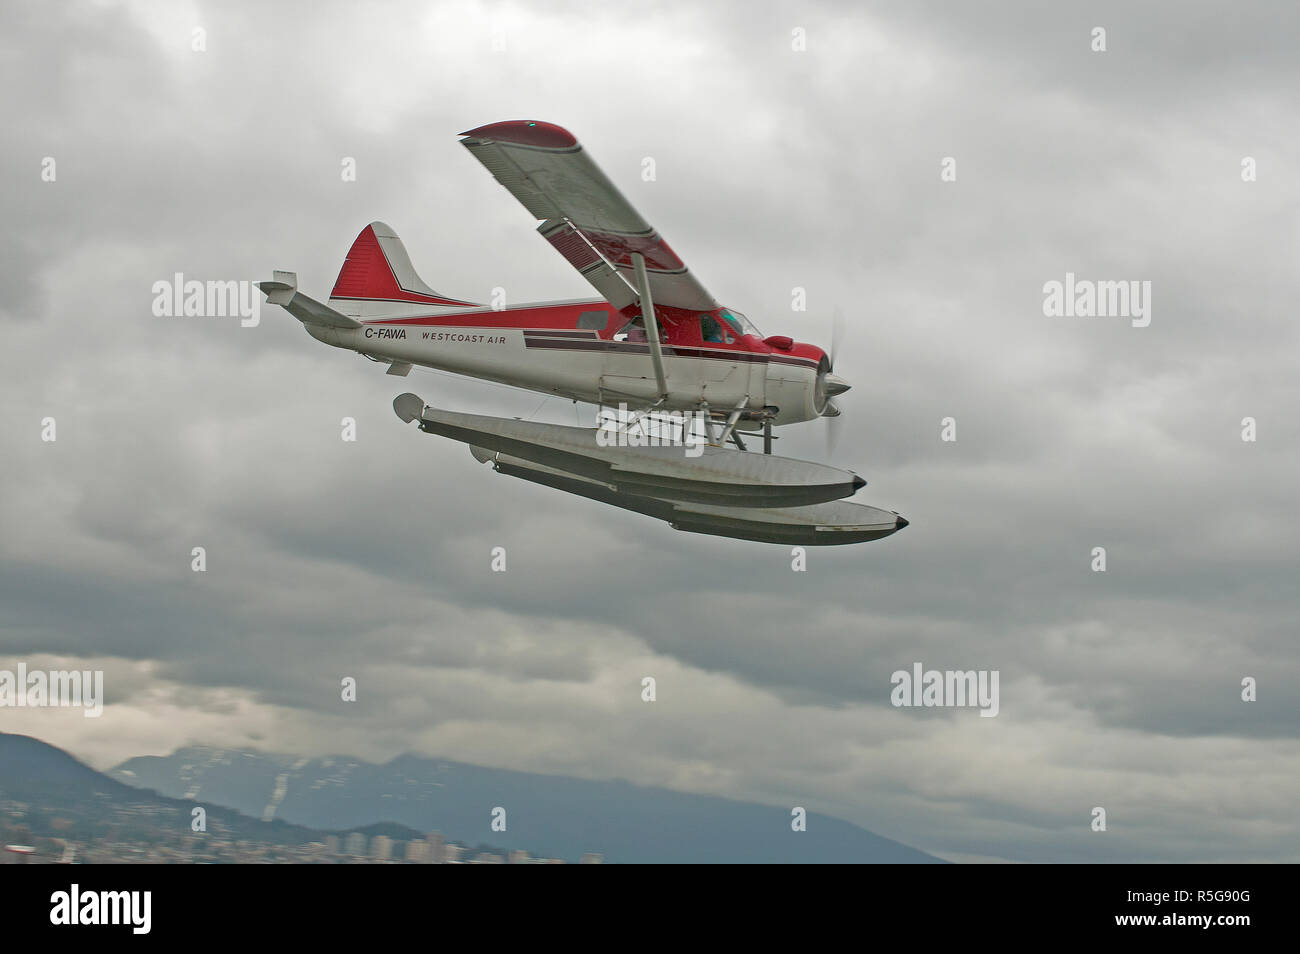 A de Havilland DHC2 Beaver floatplane making its approach to the waterways of Vancouver city Harbour in BC Canada. Stock Photo